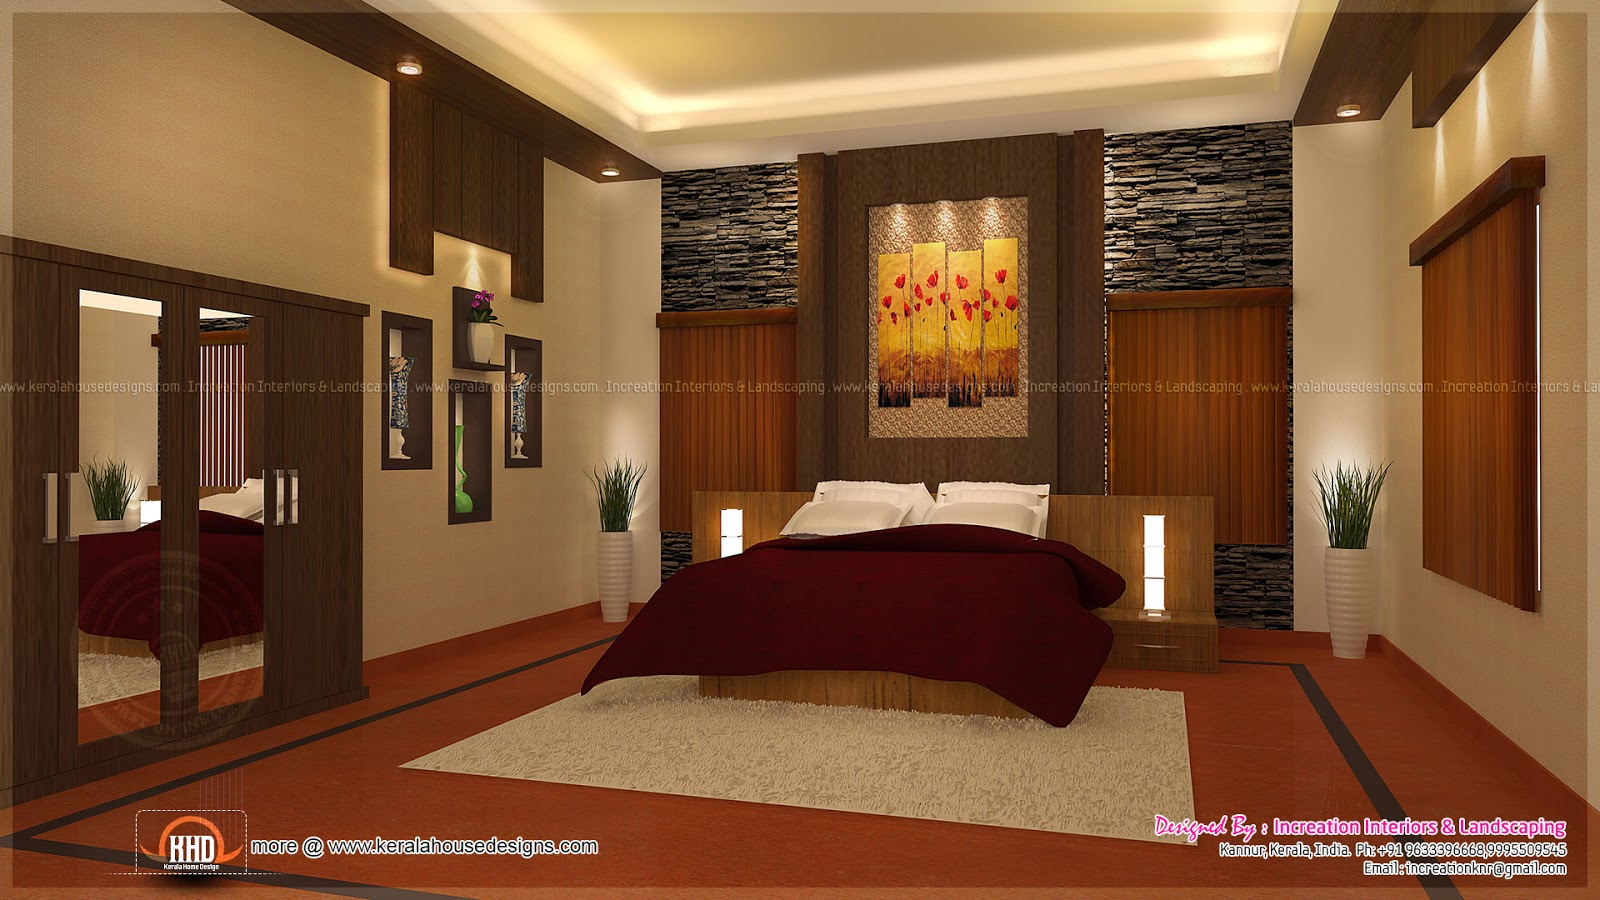 Interior Design Projects SHOW GALLERY IN FULL SCREEN